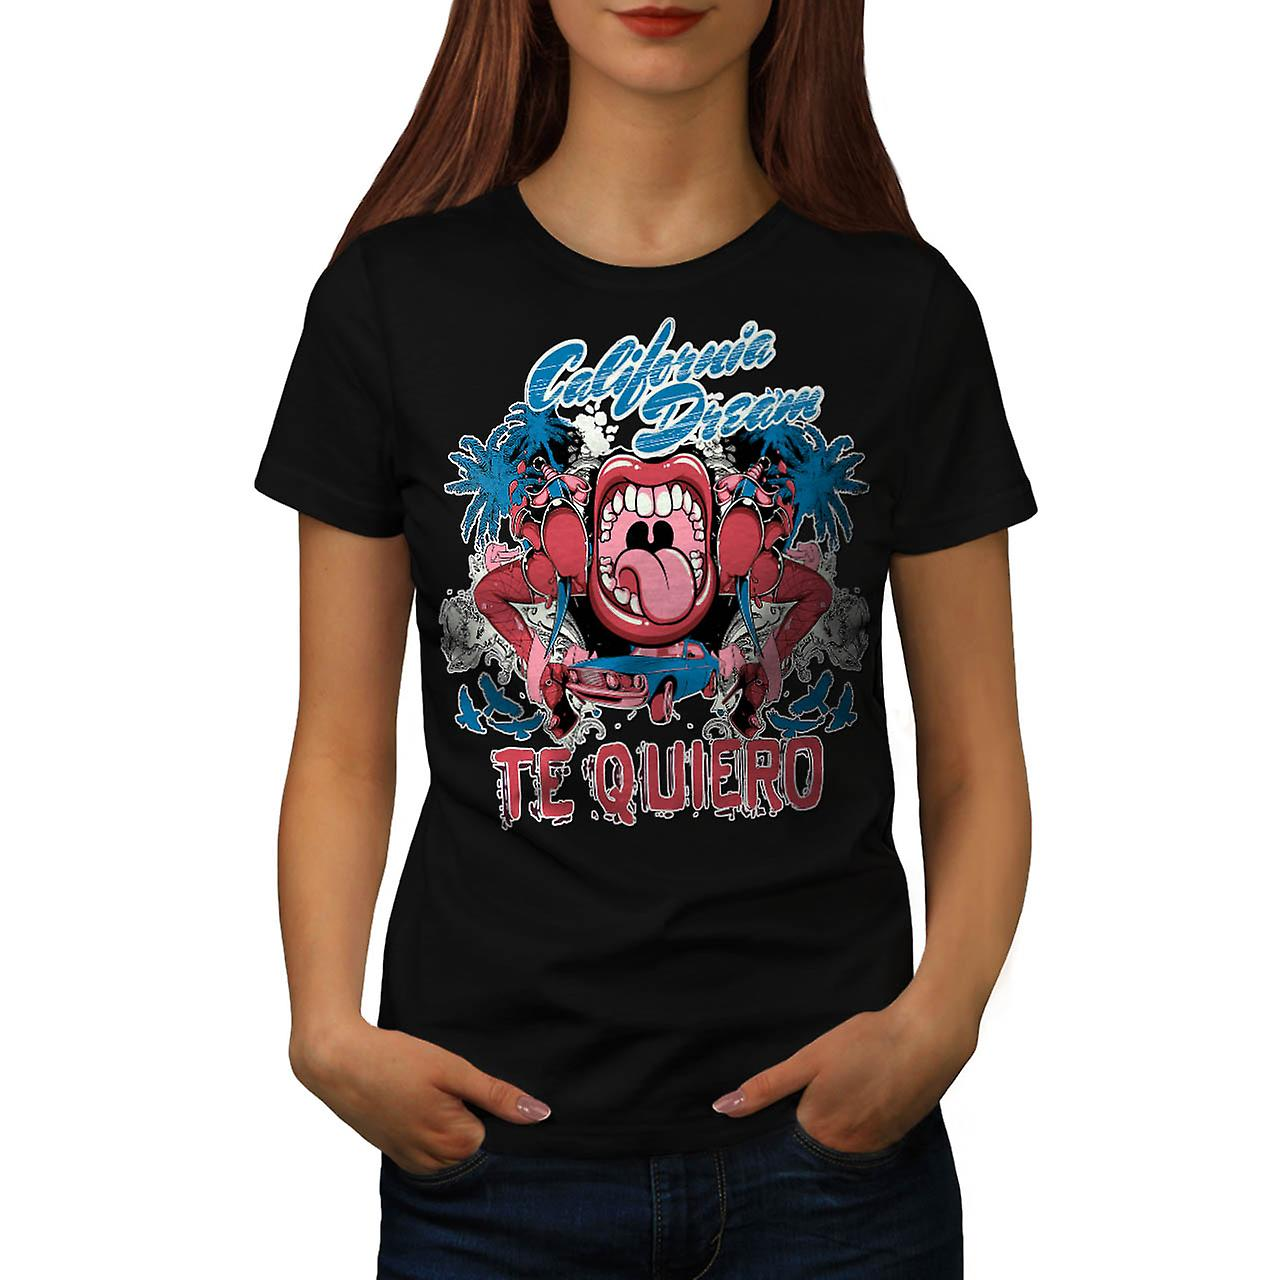 Te Quiero Art California Love You Women Black T-shirt | Wellcoda